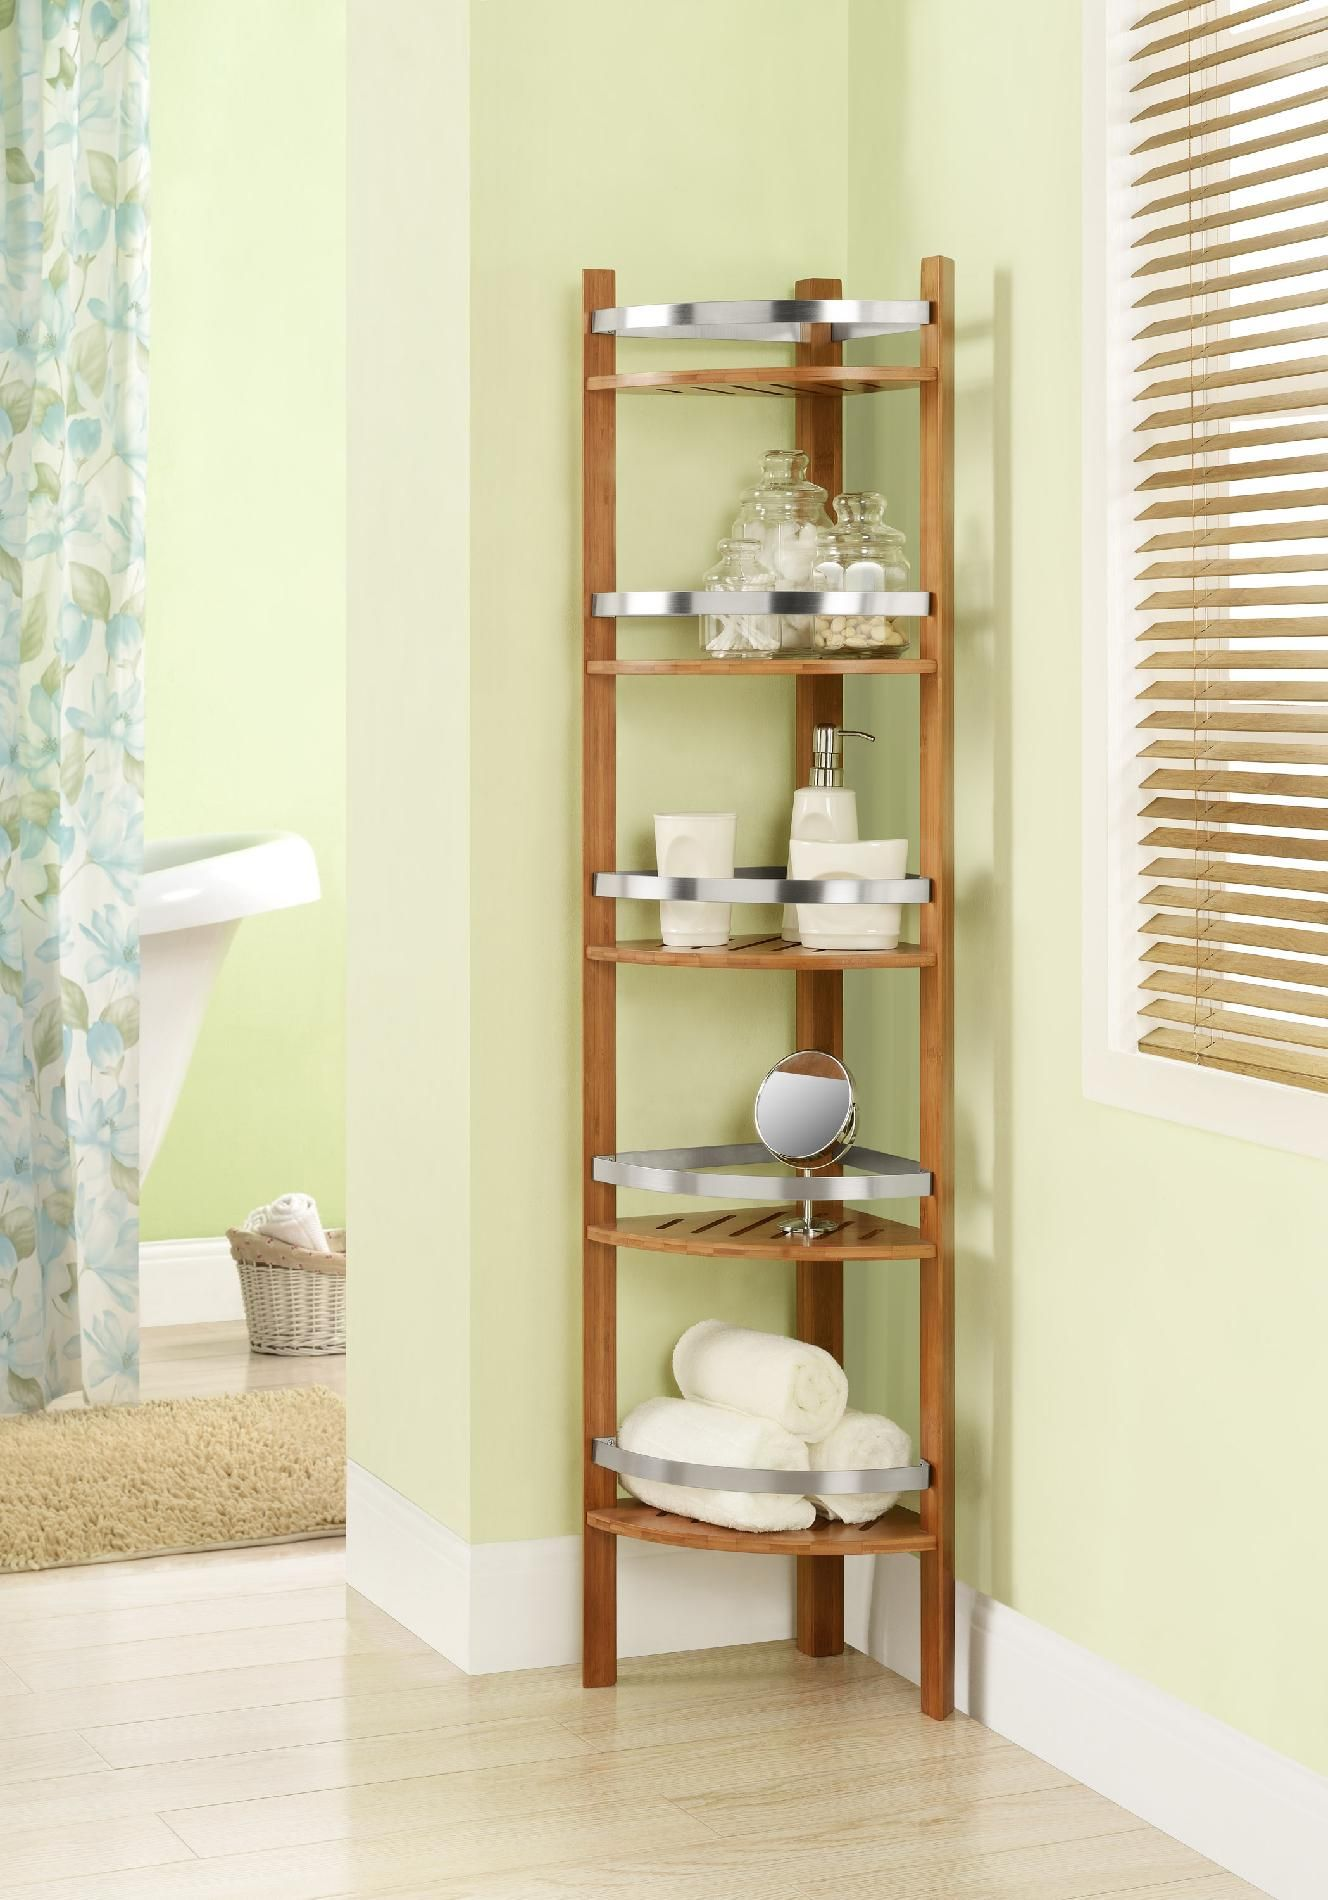 Kmart corner shelves | storage | Pinterest | Corner shelf and Spin